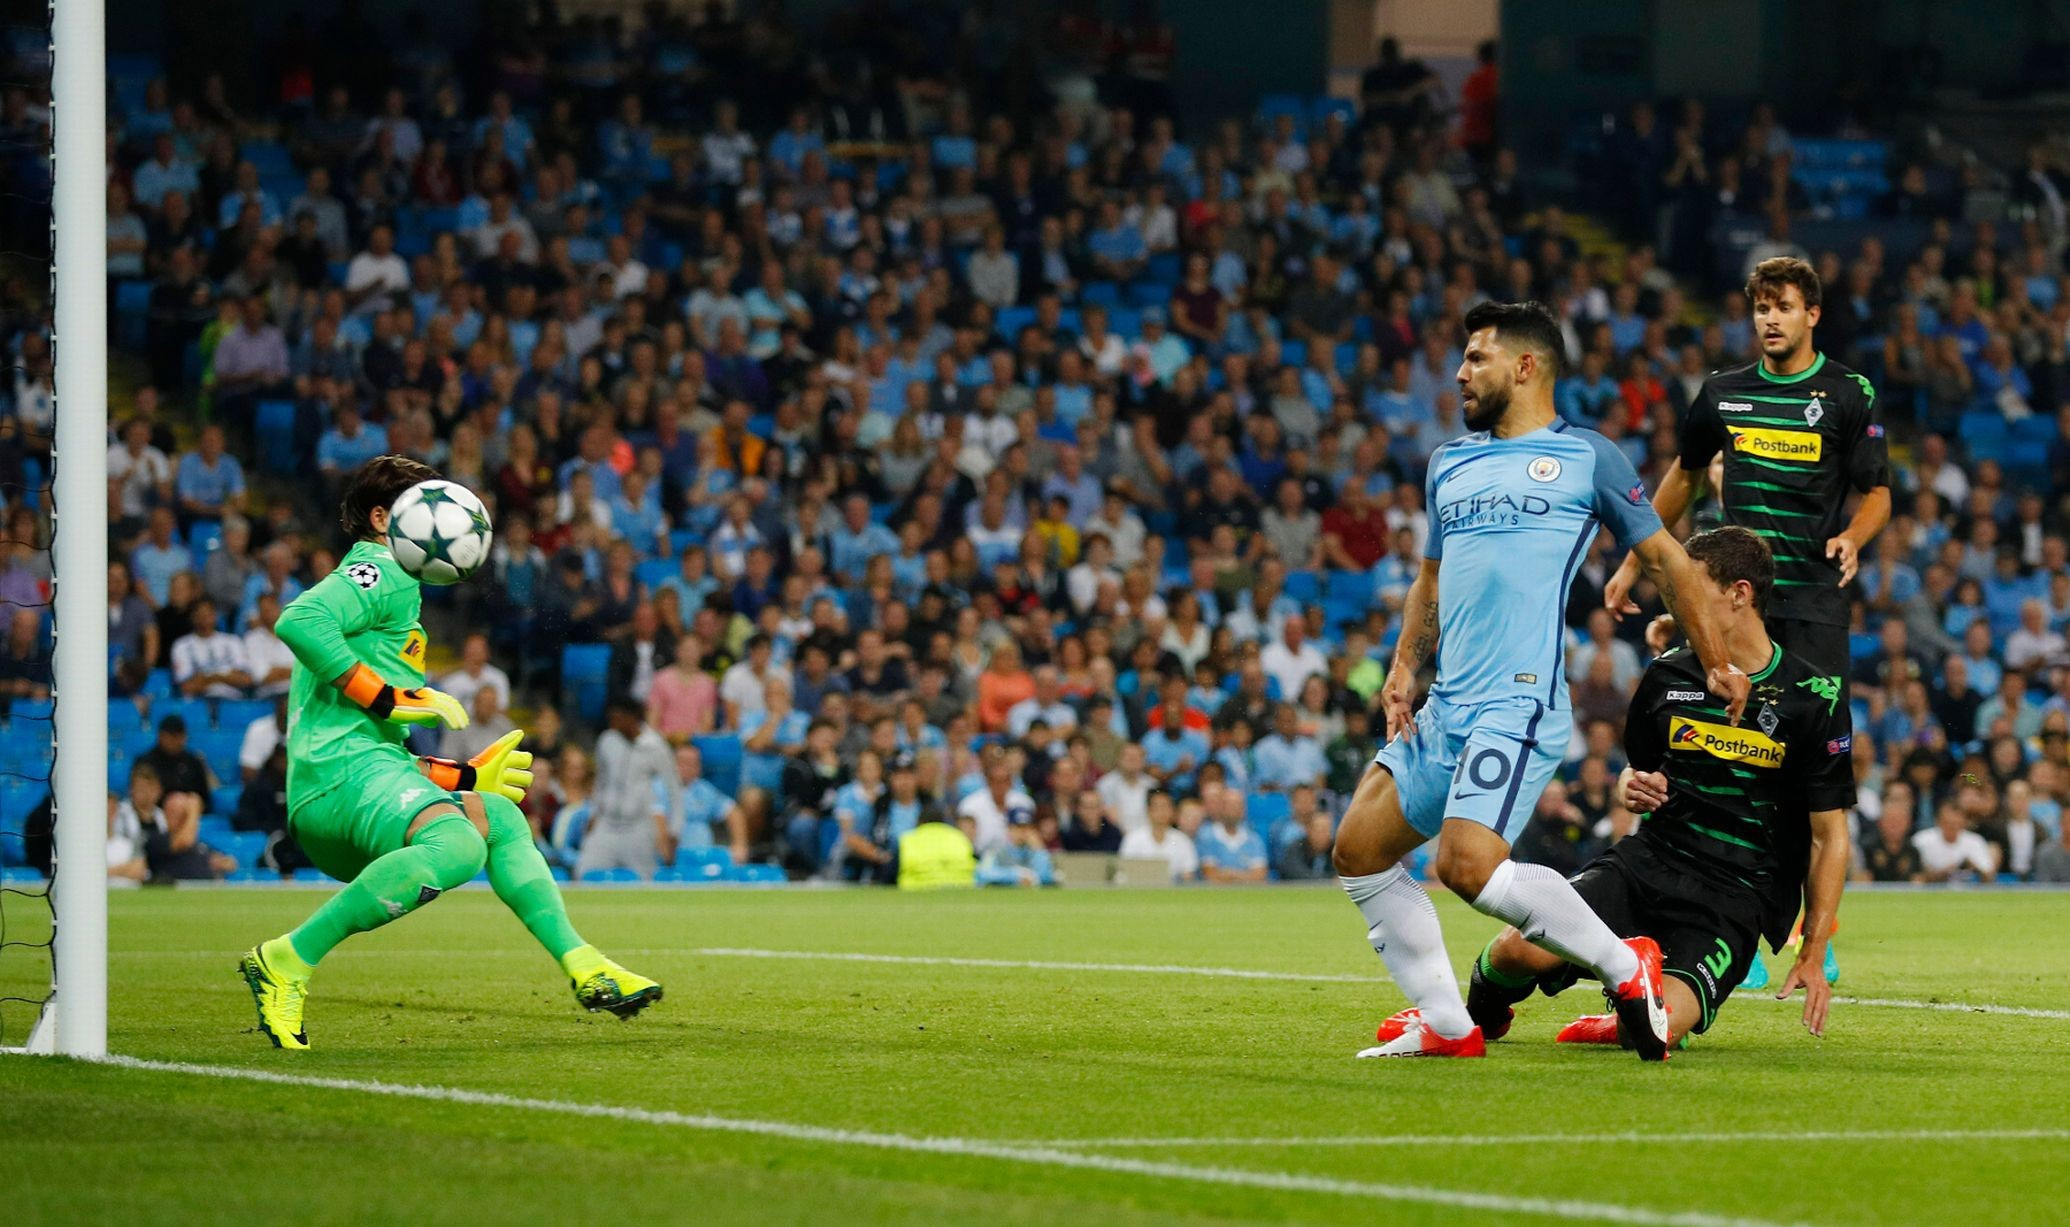 Pictures of Manchester City